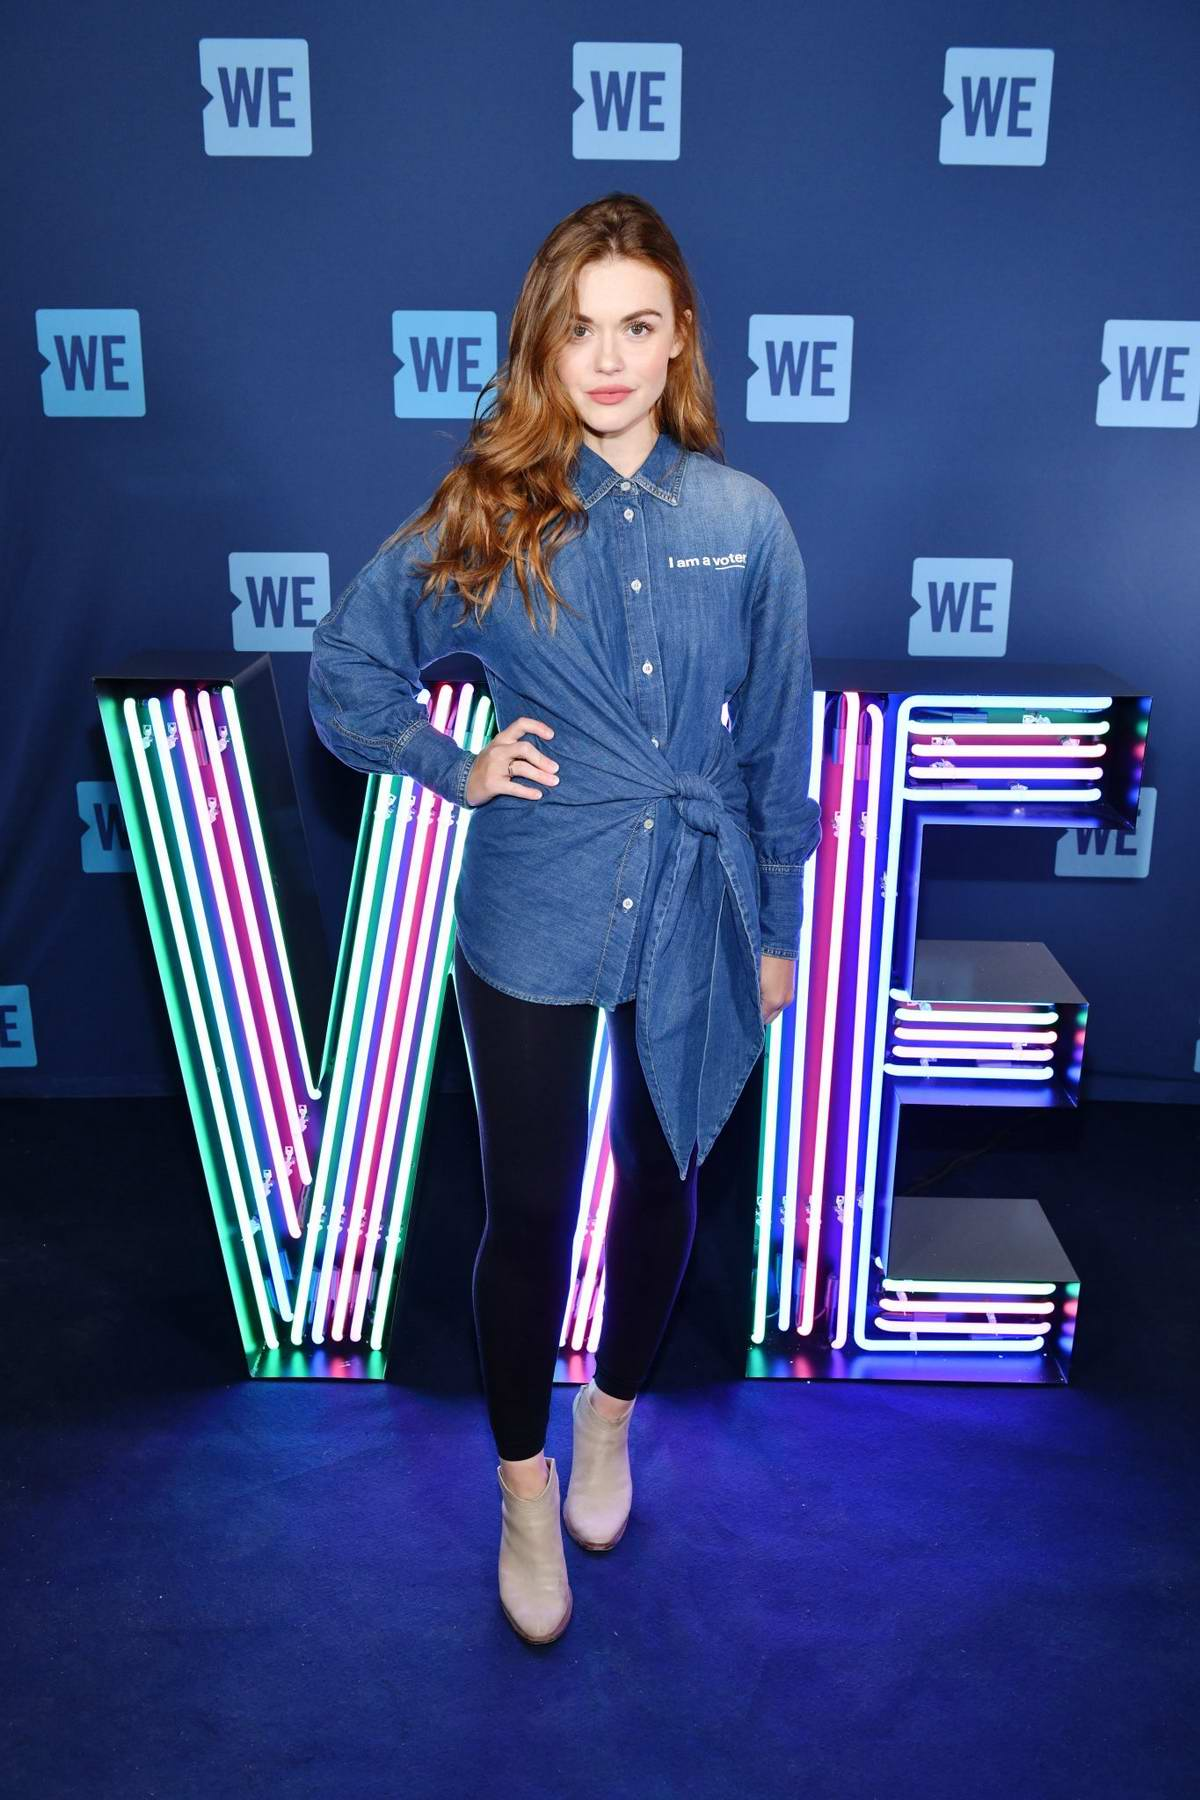 Holland Roden attends the WE Day UN 2019 at Barclays Center in Brooklyn, New York City